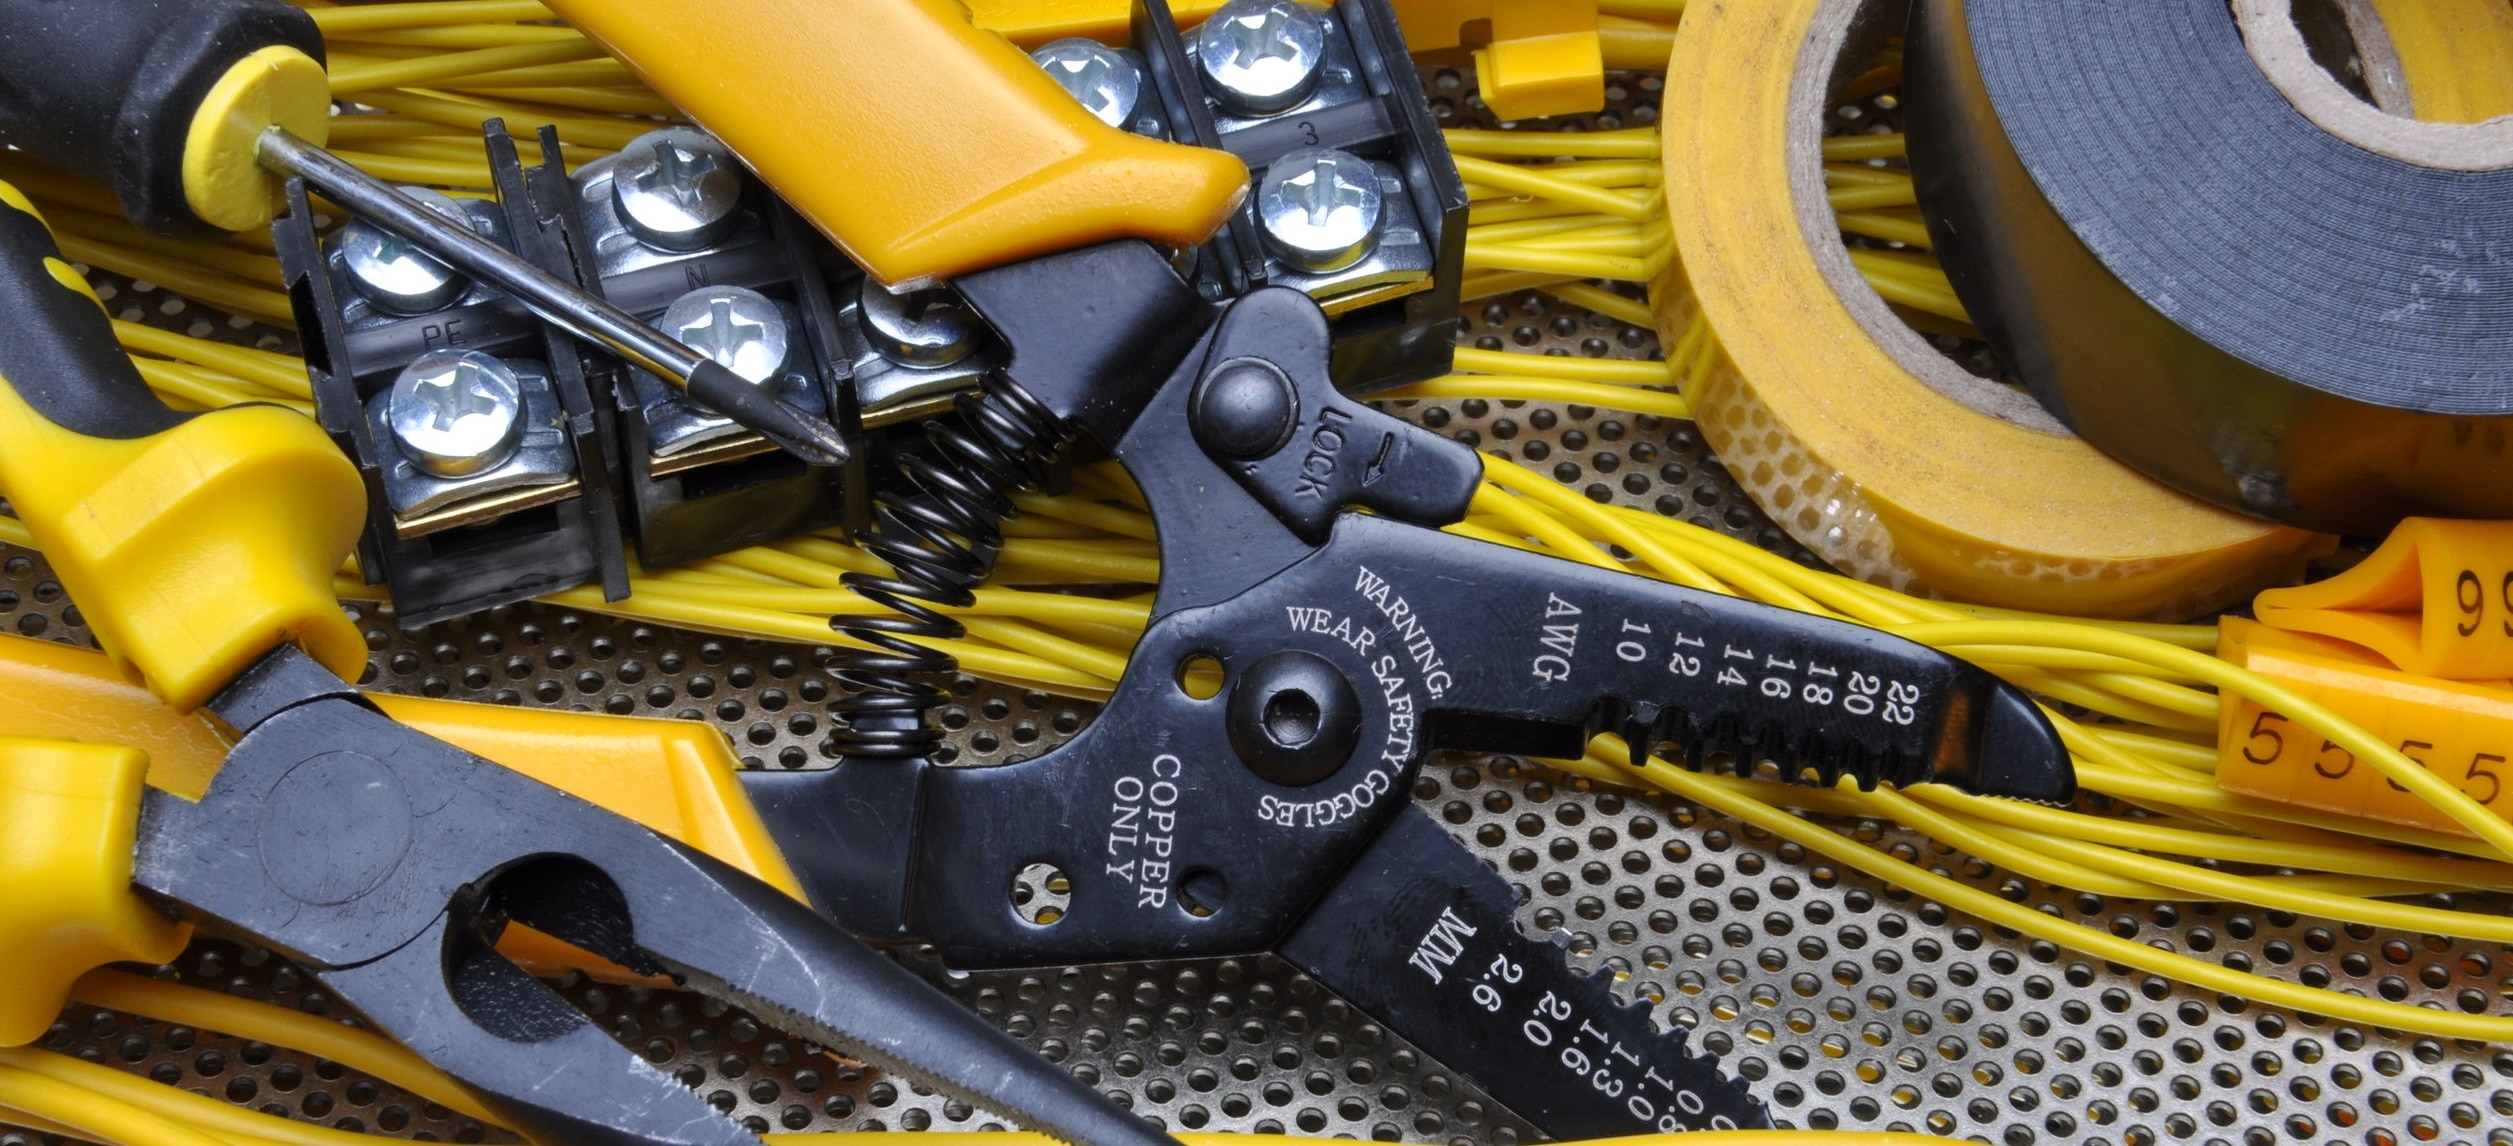 Pliers strippers with electrical component kit